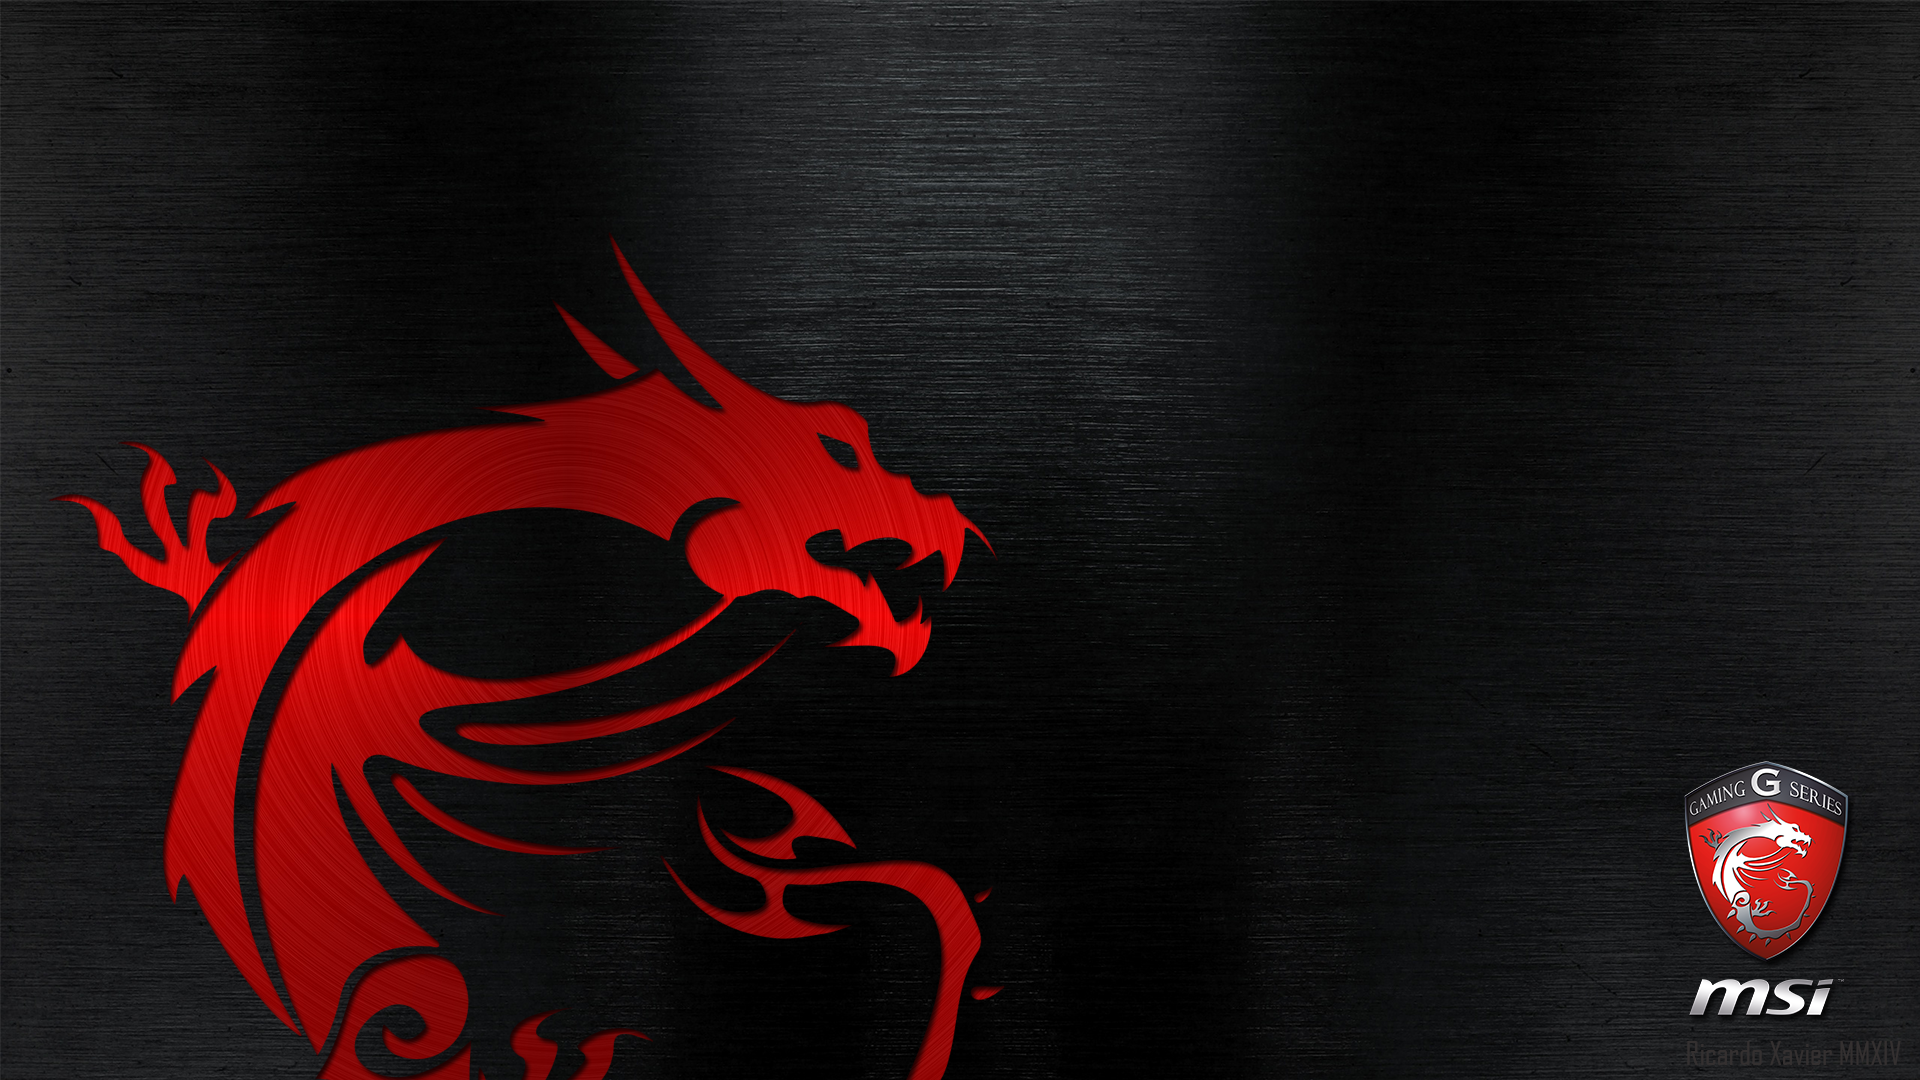 Msi gaming wallpaper red dragon emobossed 19201080 msi msi gaming wallpaper red dragon emobossed 19201080 voltagebd Images